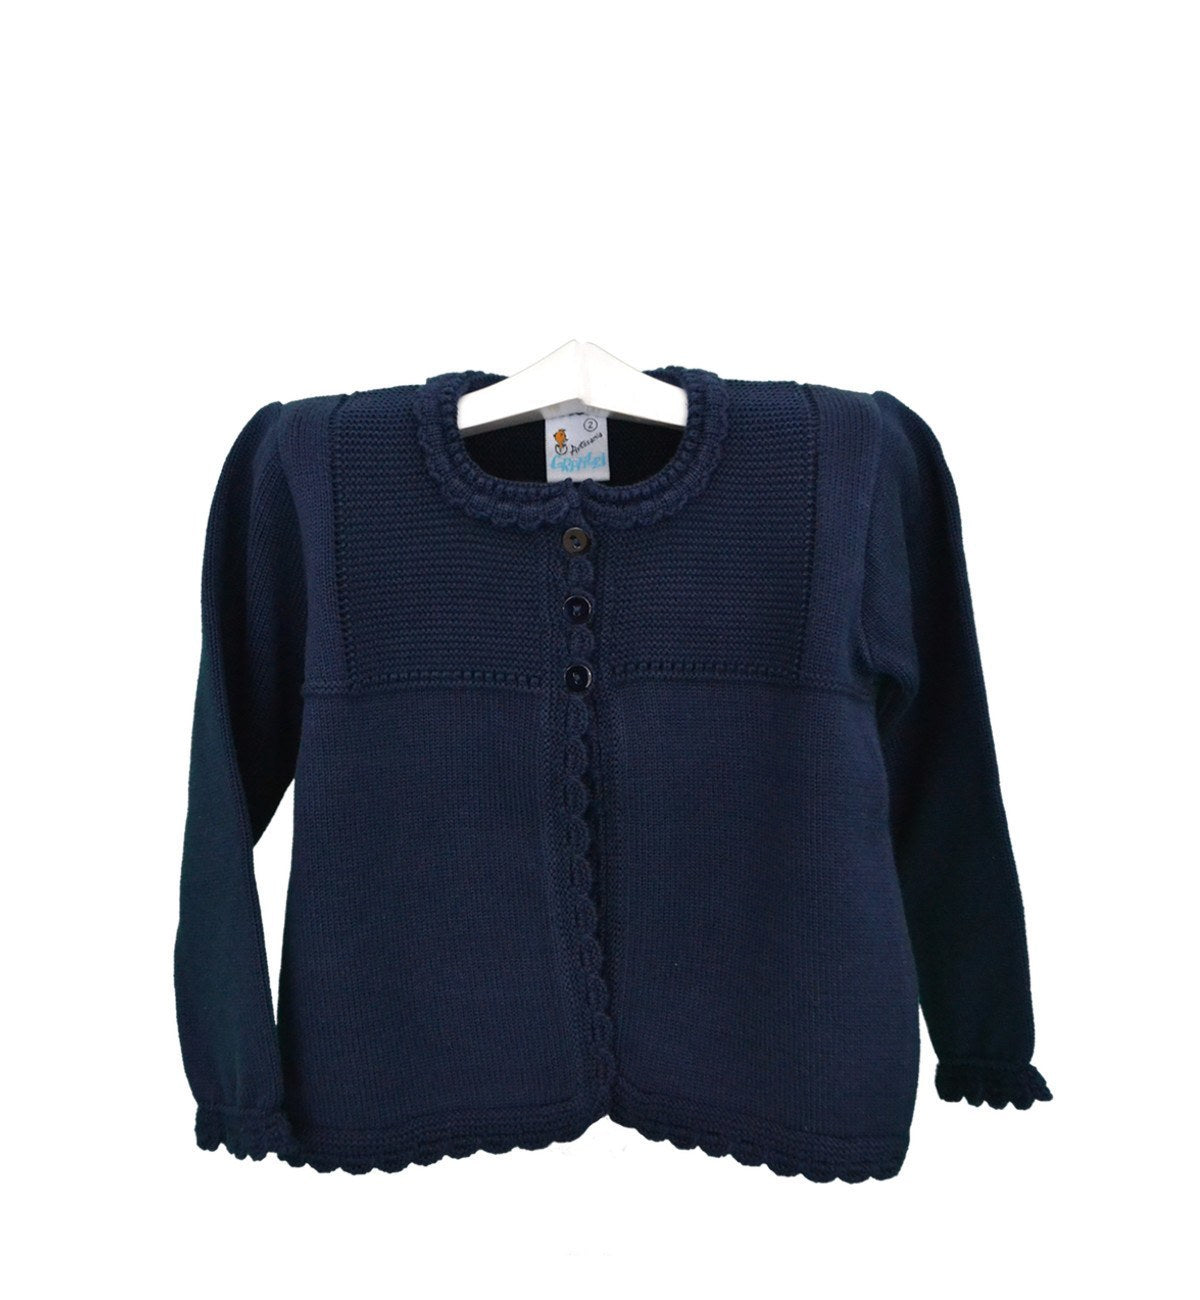 Spanish baby clothes | baby Cardigan & Coat | Knitted cardigan |babymaC  - 1